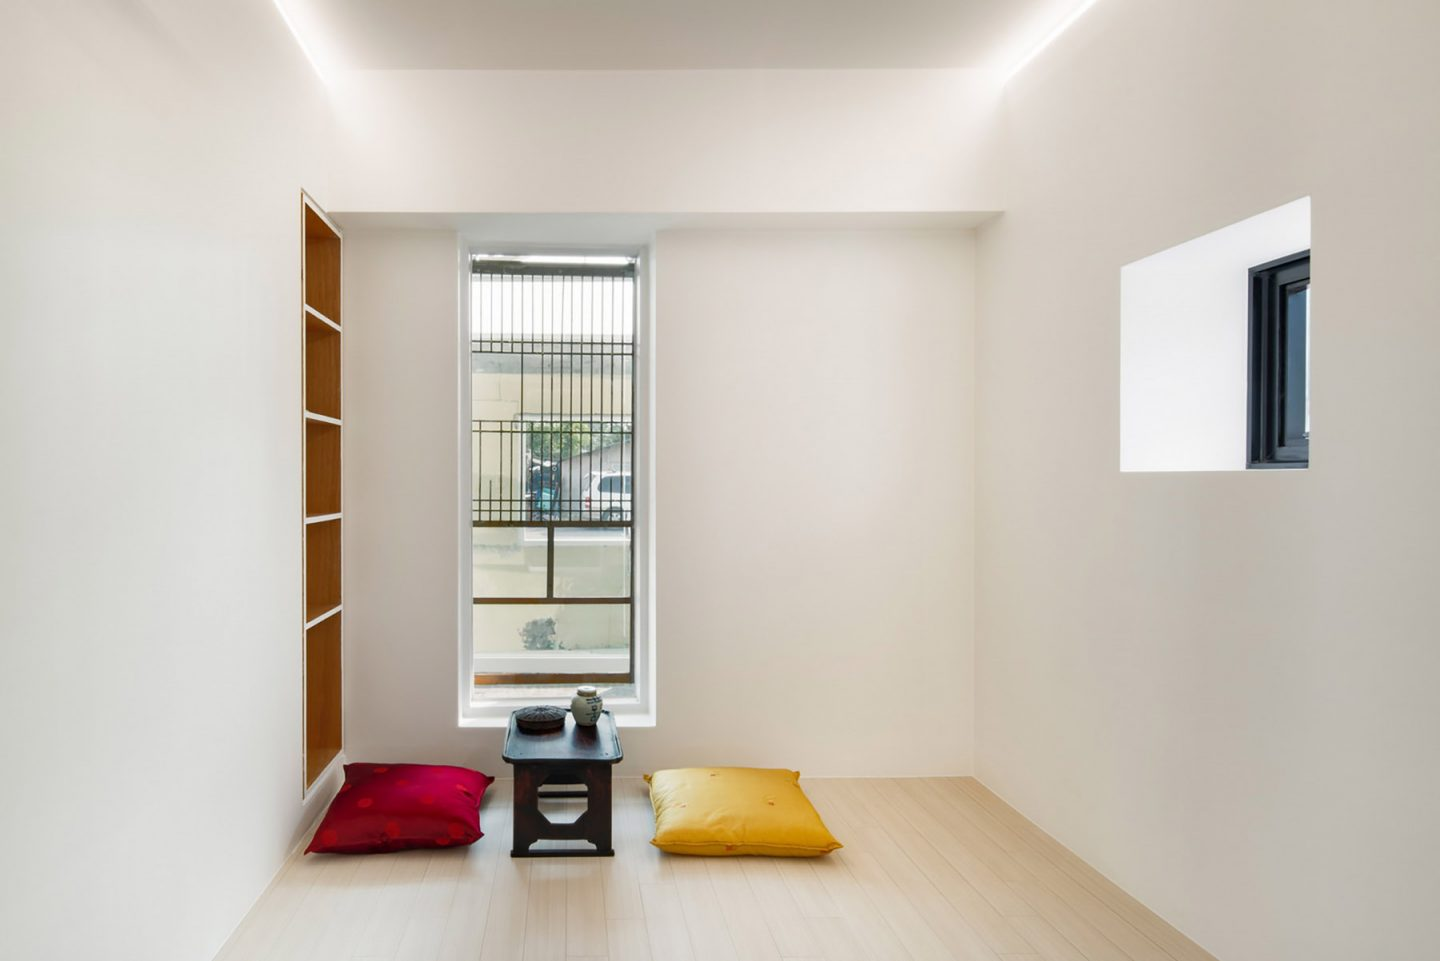 iGNANT-Architecture-Starsis-Layered-House-014